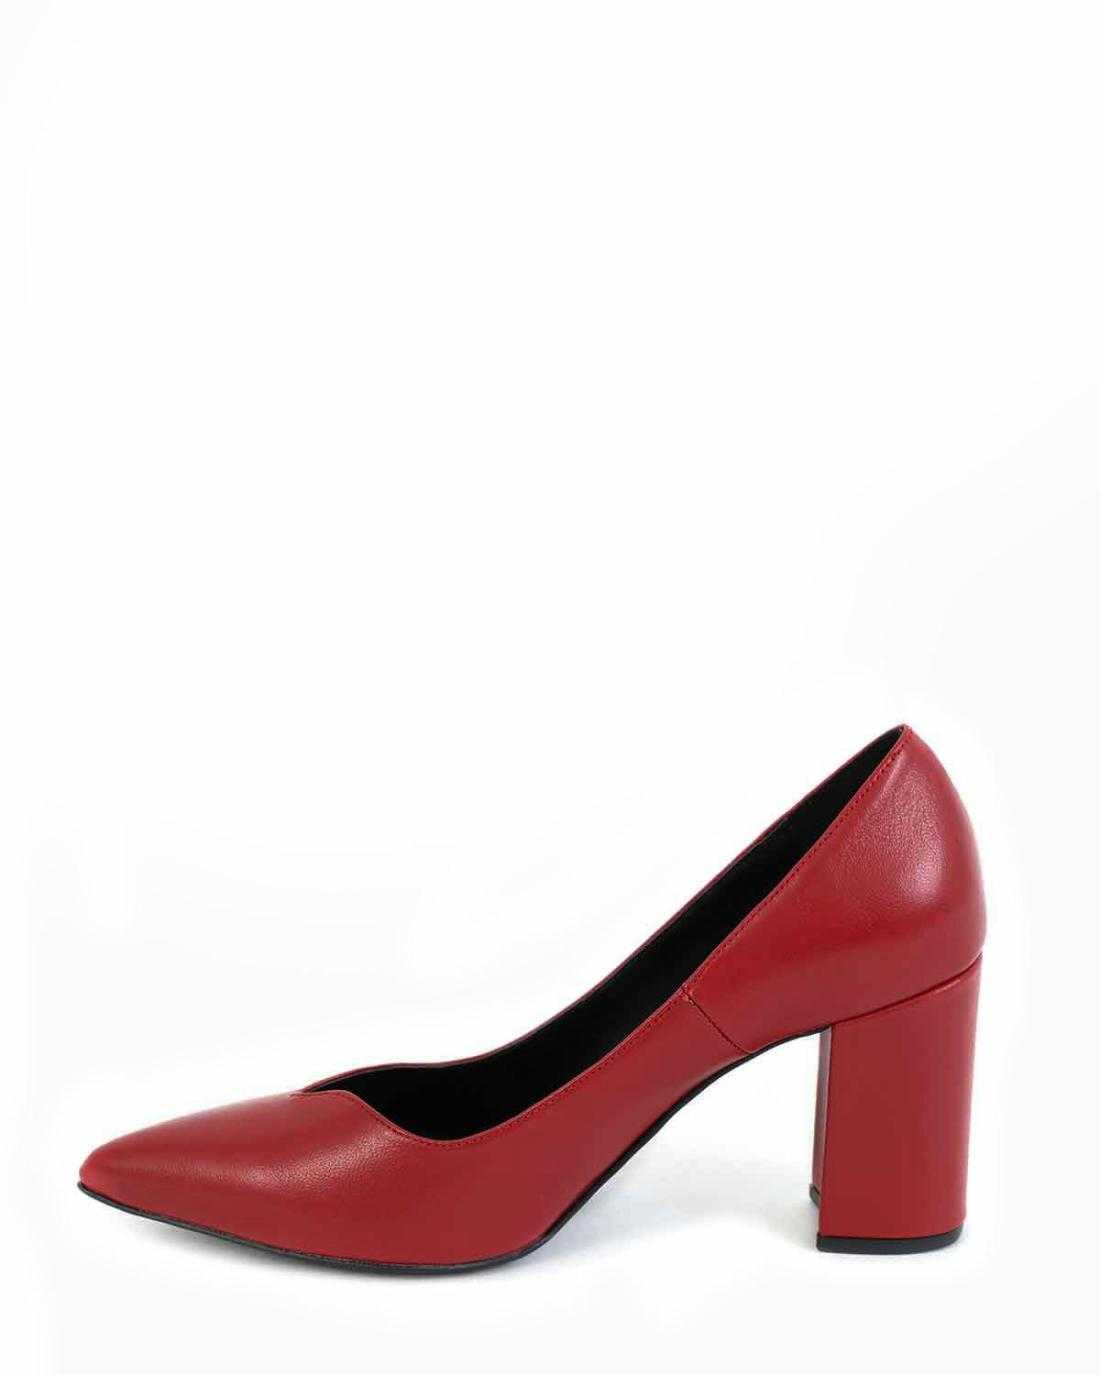 Red leather heels